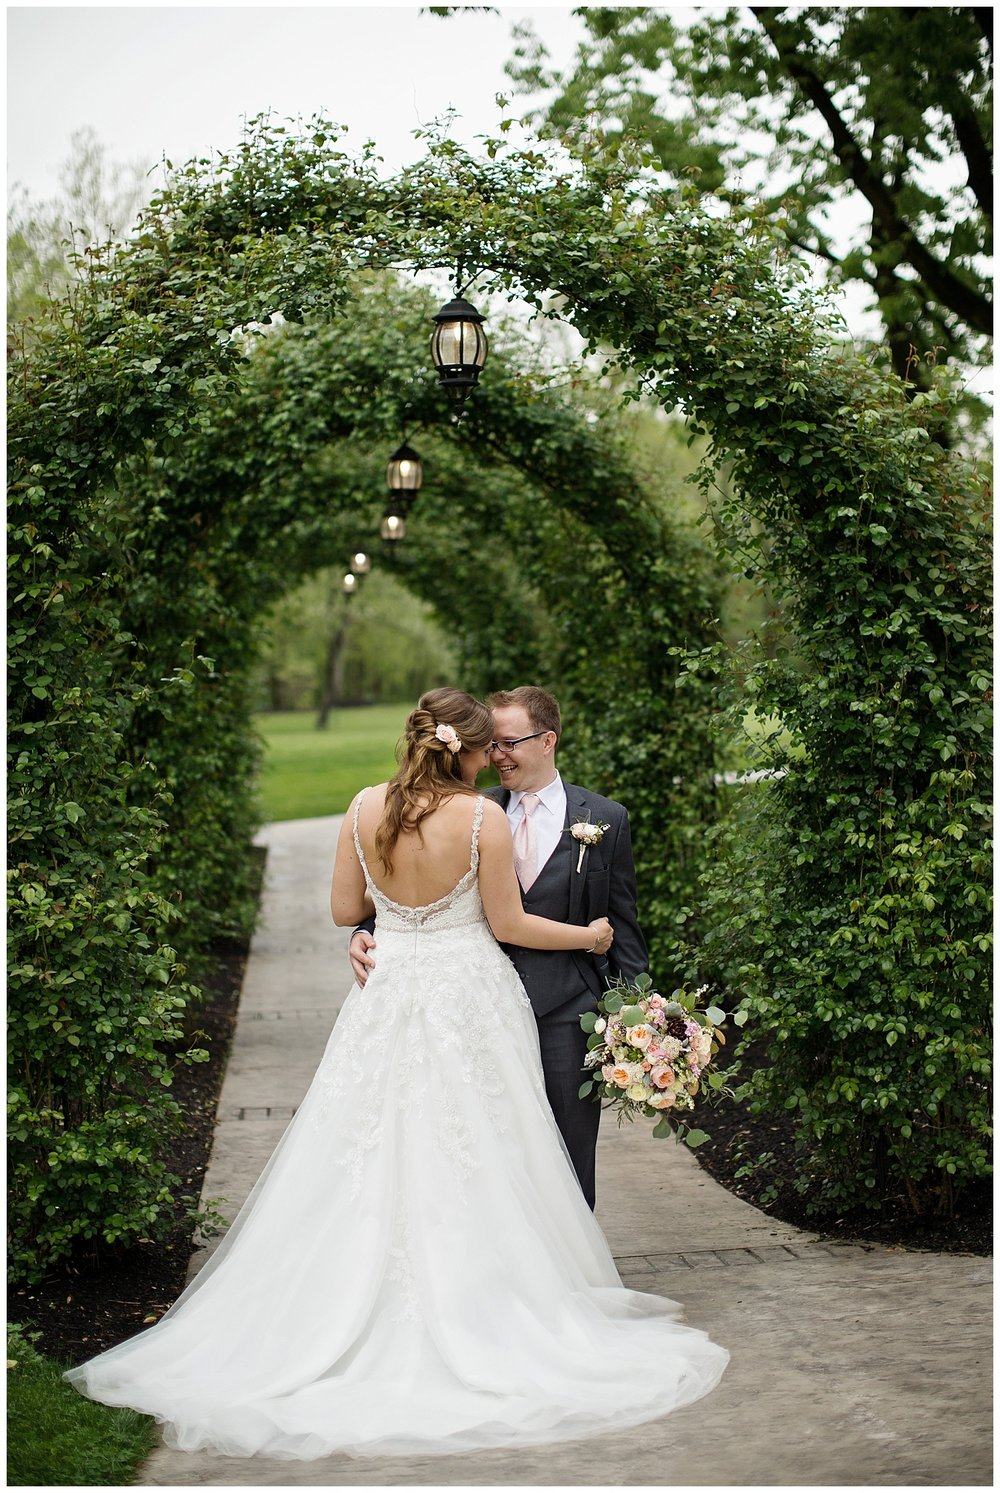 Moonstone Manor Weddings | Elizabethtown, PA | Pennsylvania Weddings | www.redoakweddings.com